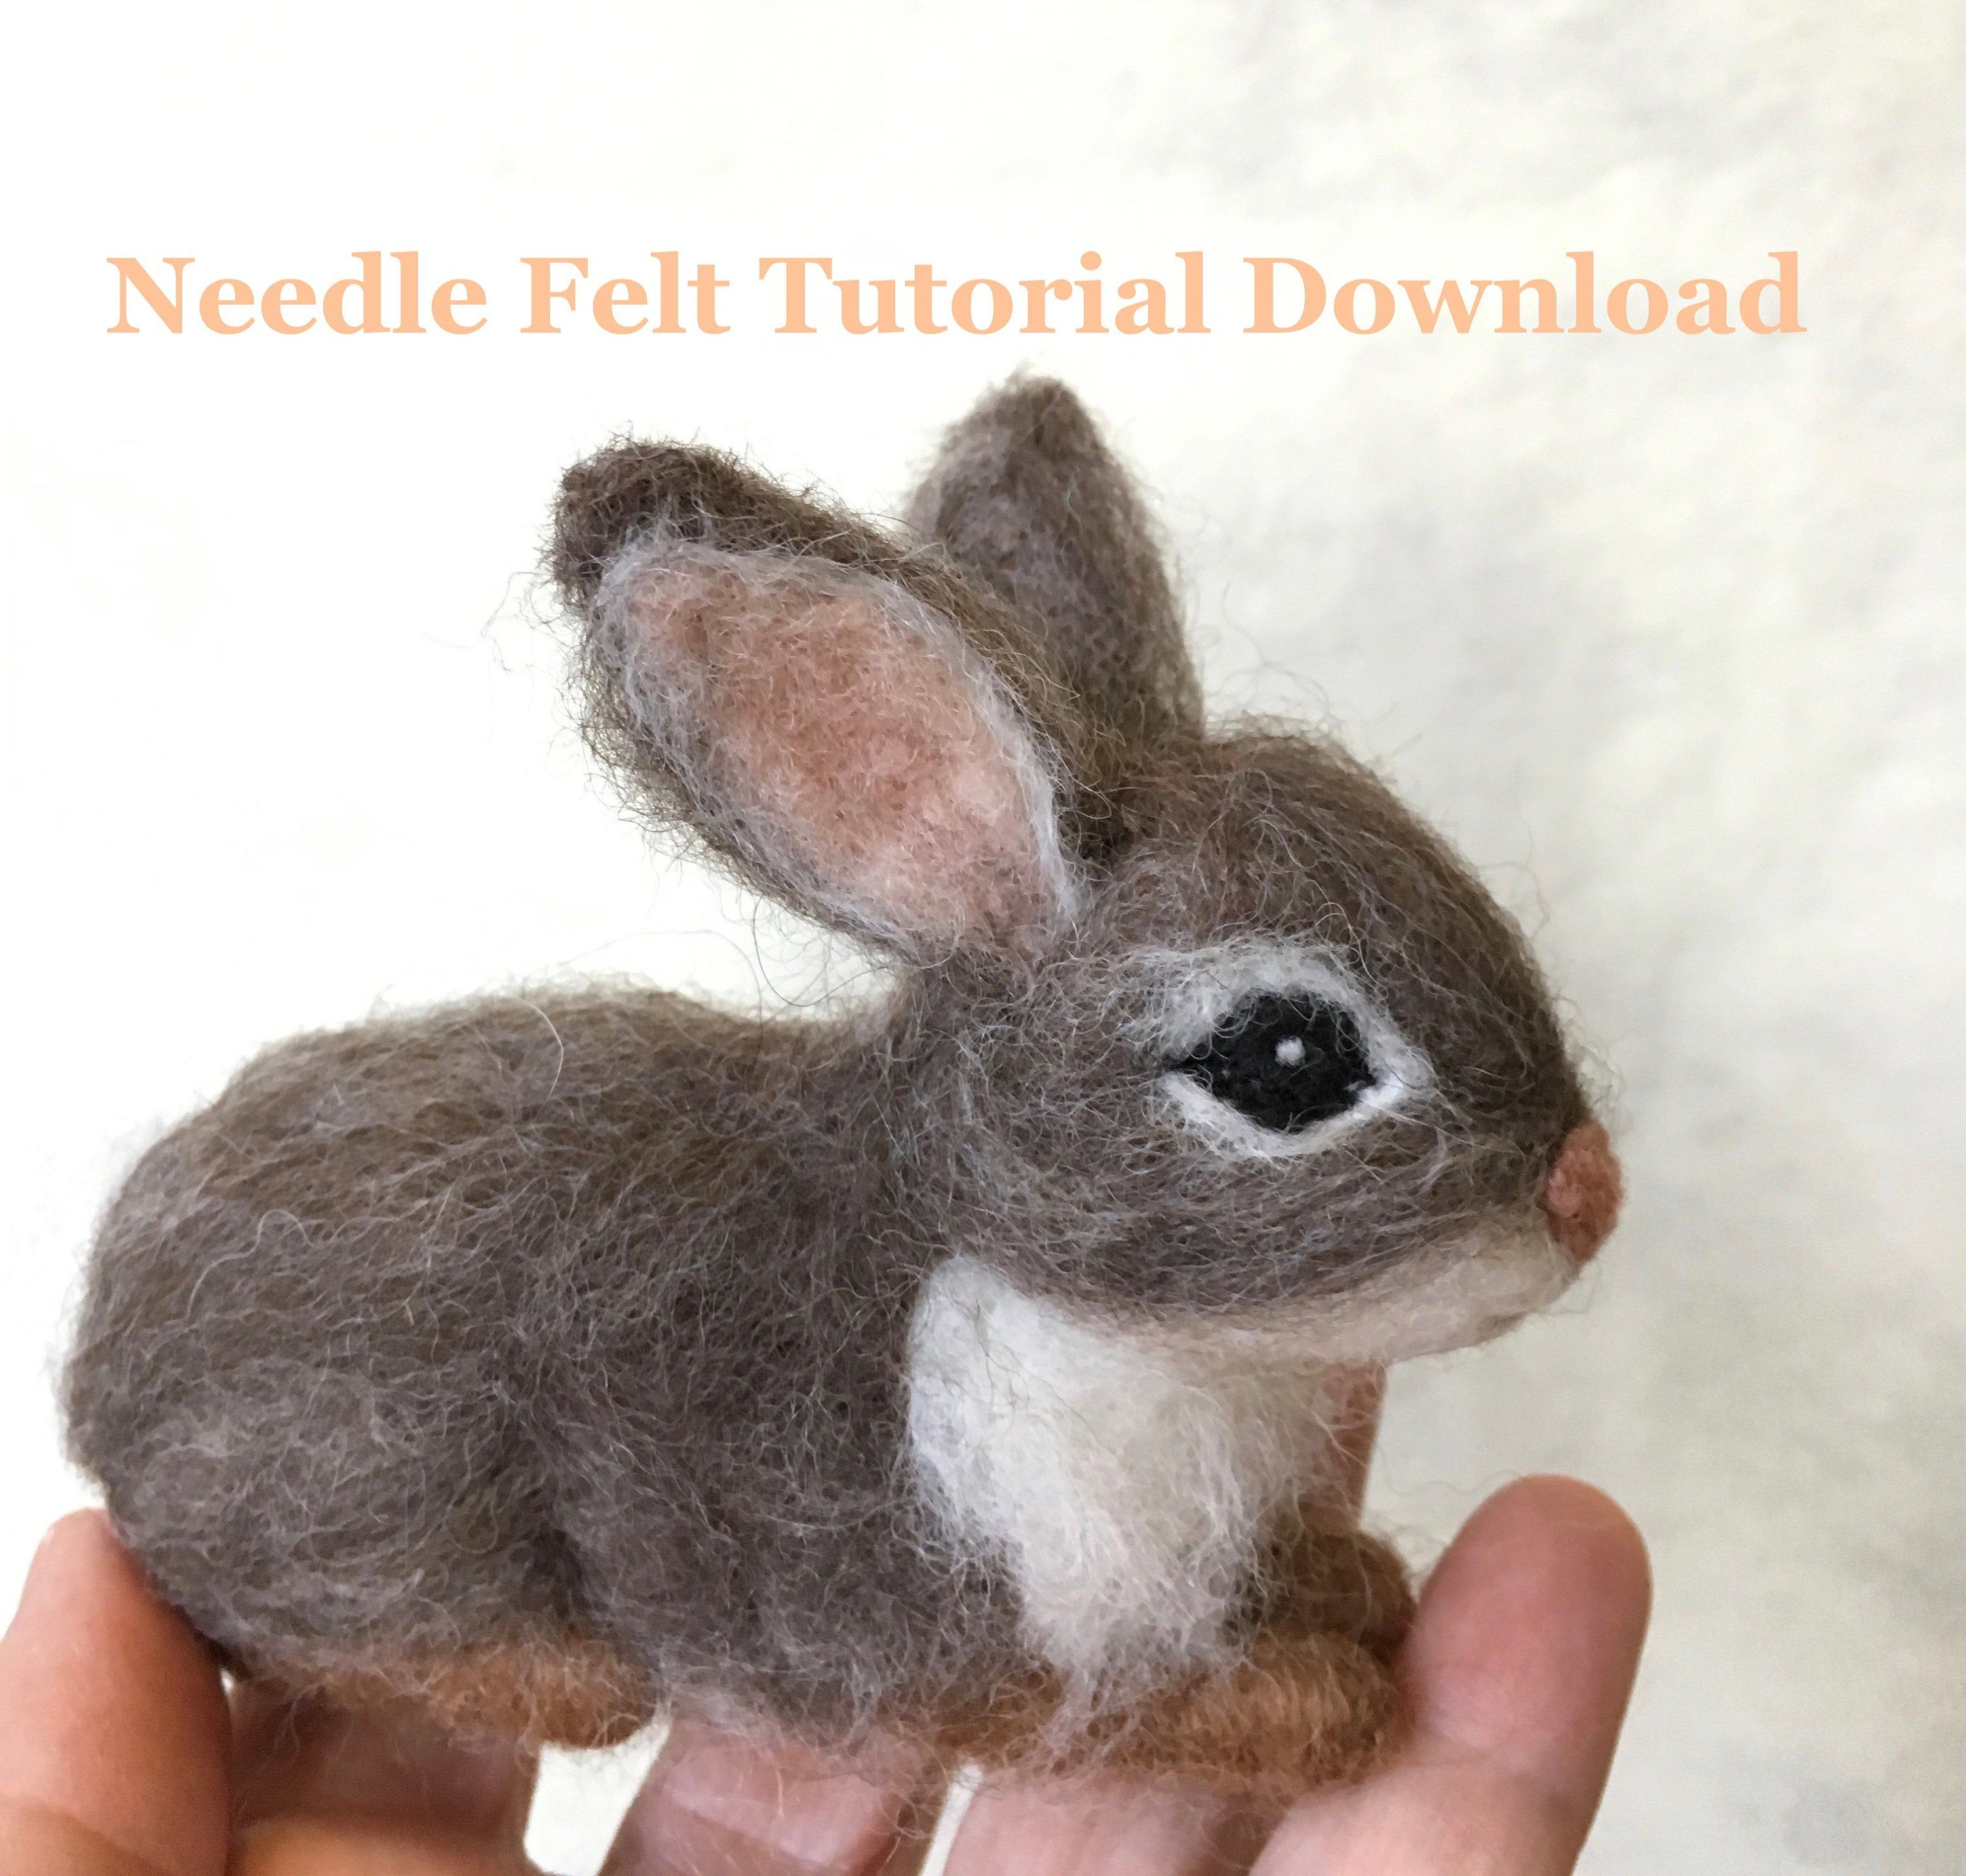 Tutorial Needle Felt Bunny Rabbit, Instant Download PDF, 12 Detailed Pages, 64 Photos